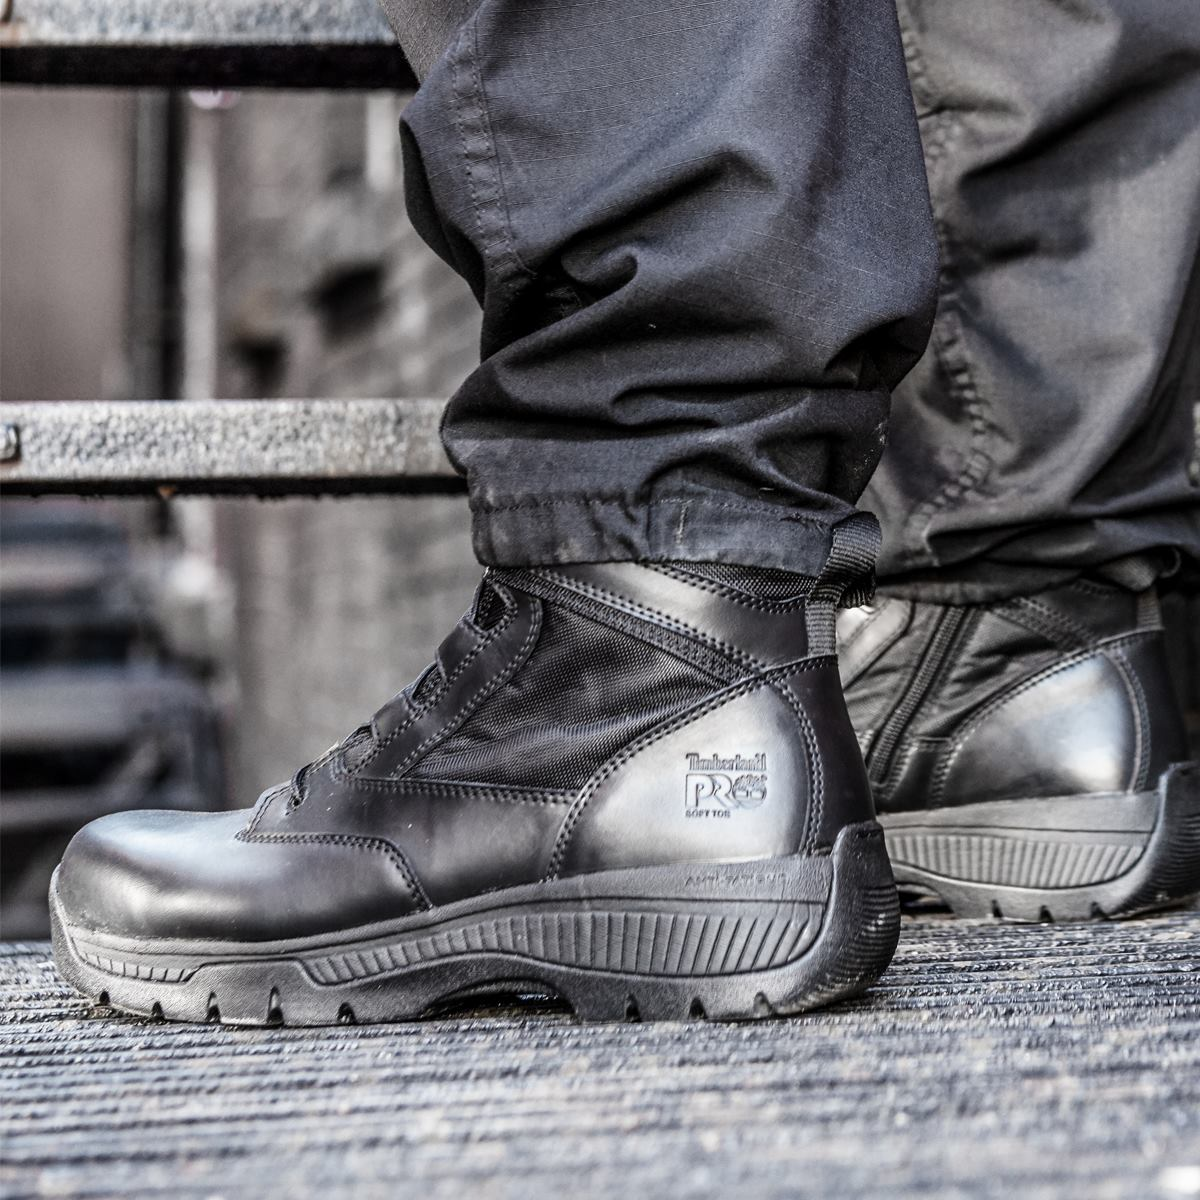 Timberland Pro Valor Tactical Boots